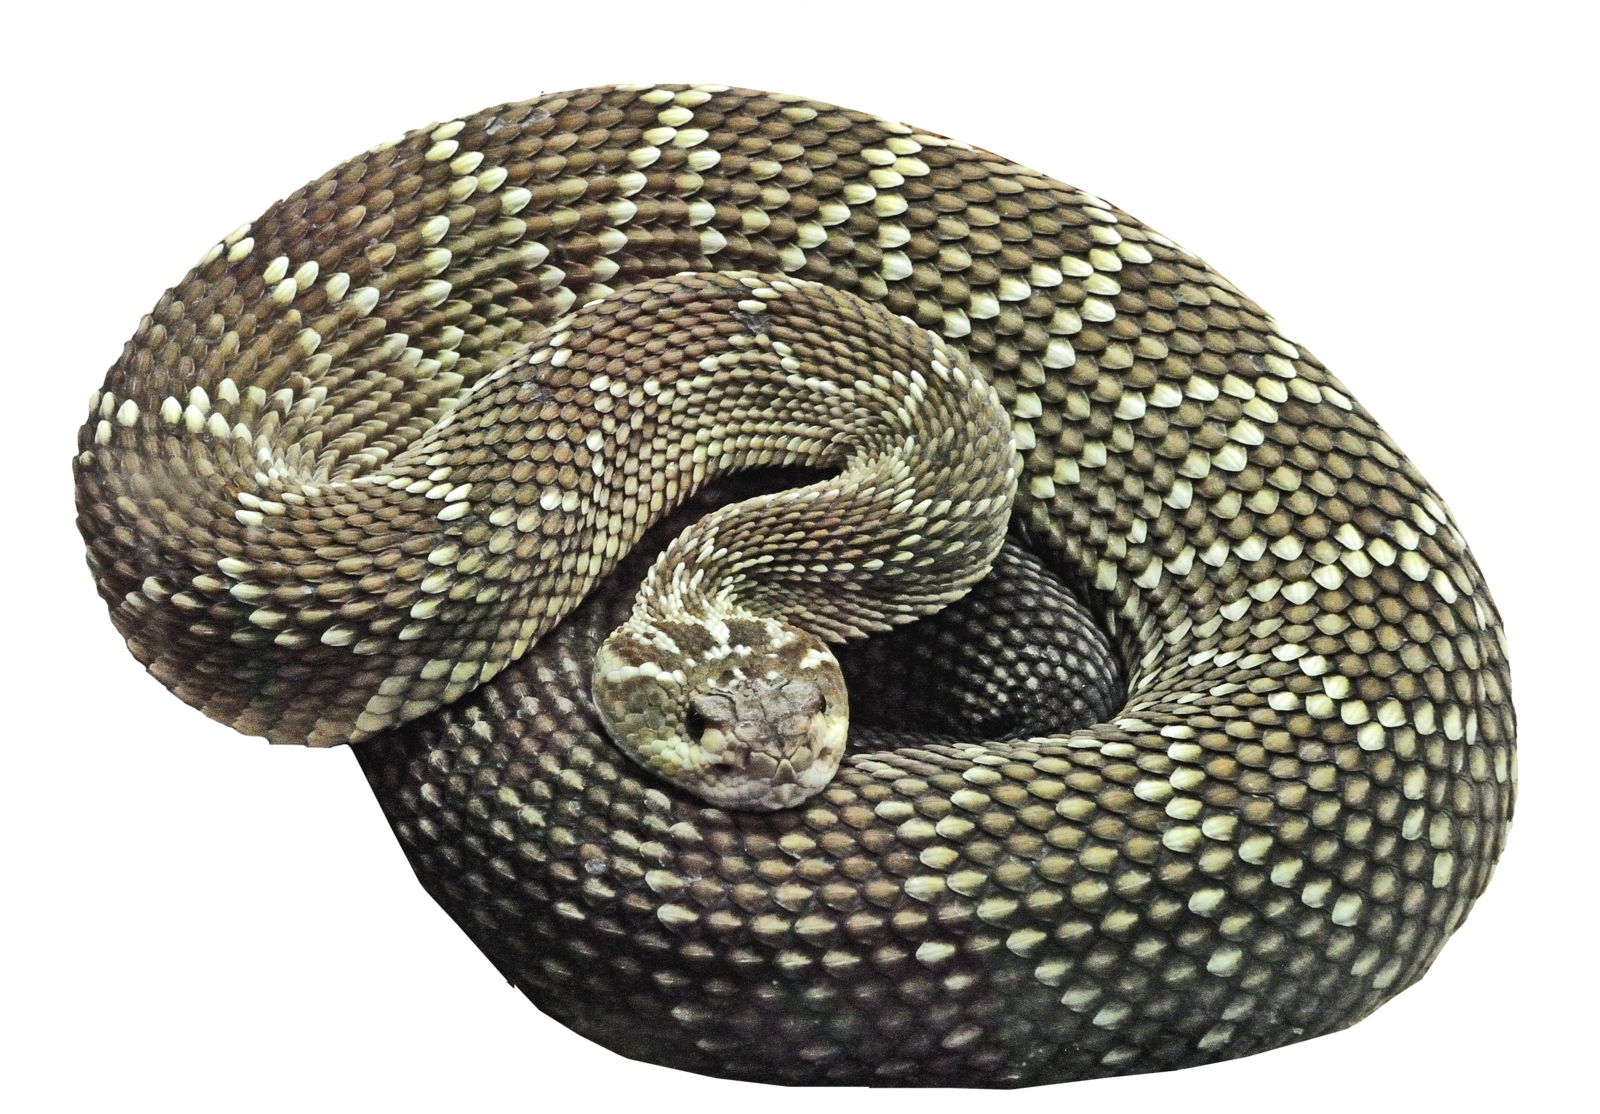 Desert snake png. Transparent pictures free icons